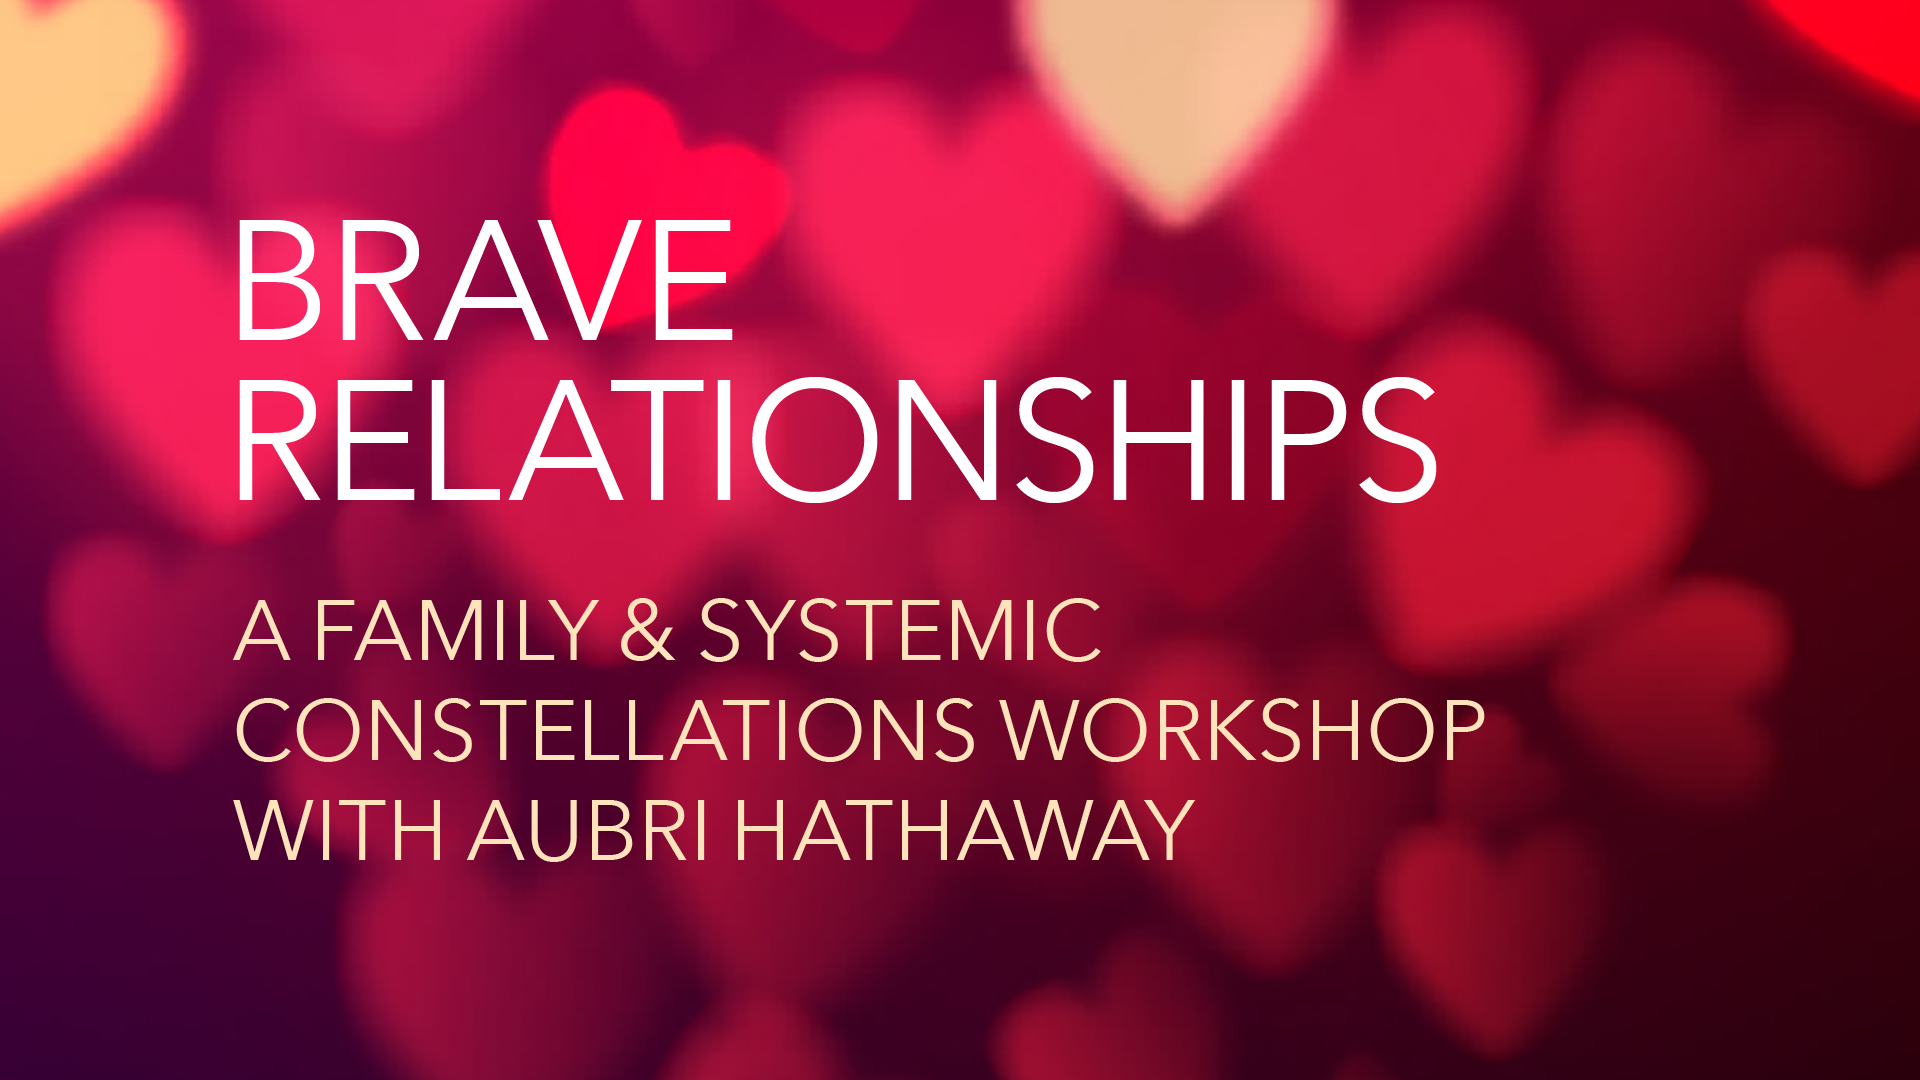 Brave Relationships (16x9 Event Cover).png